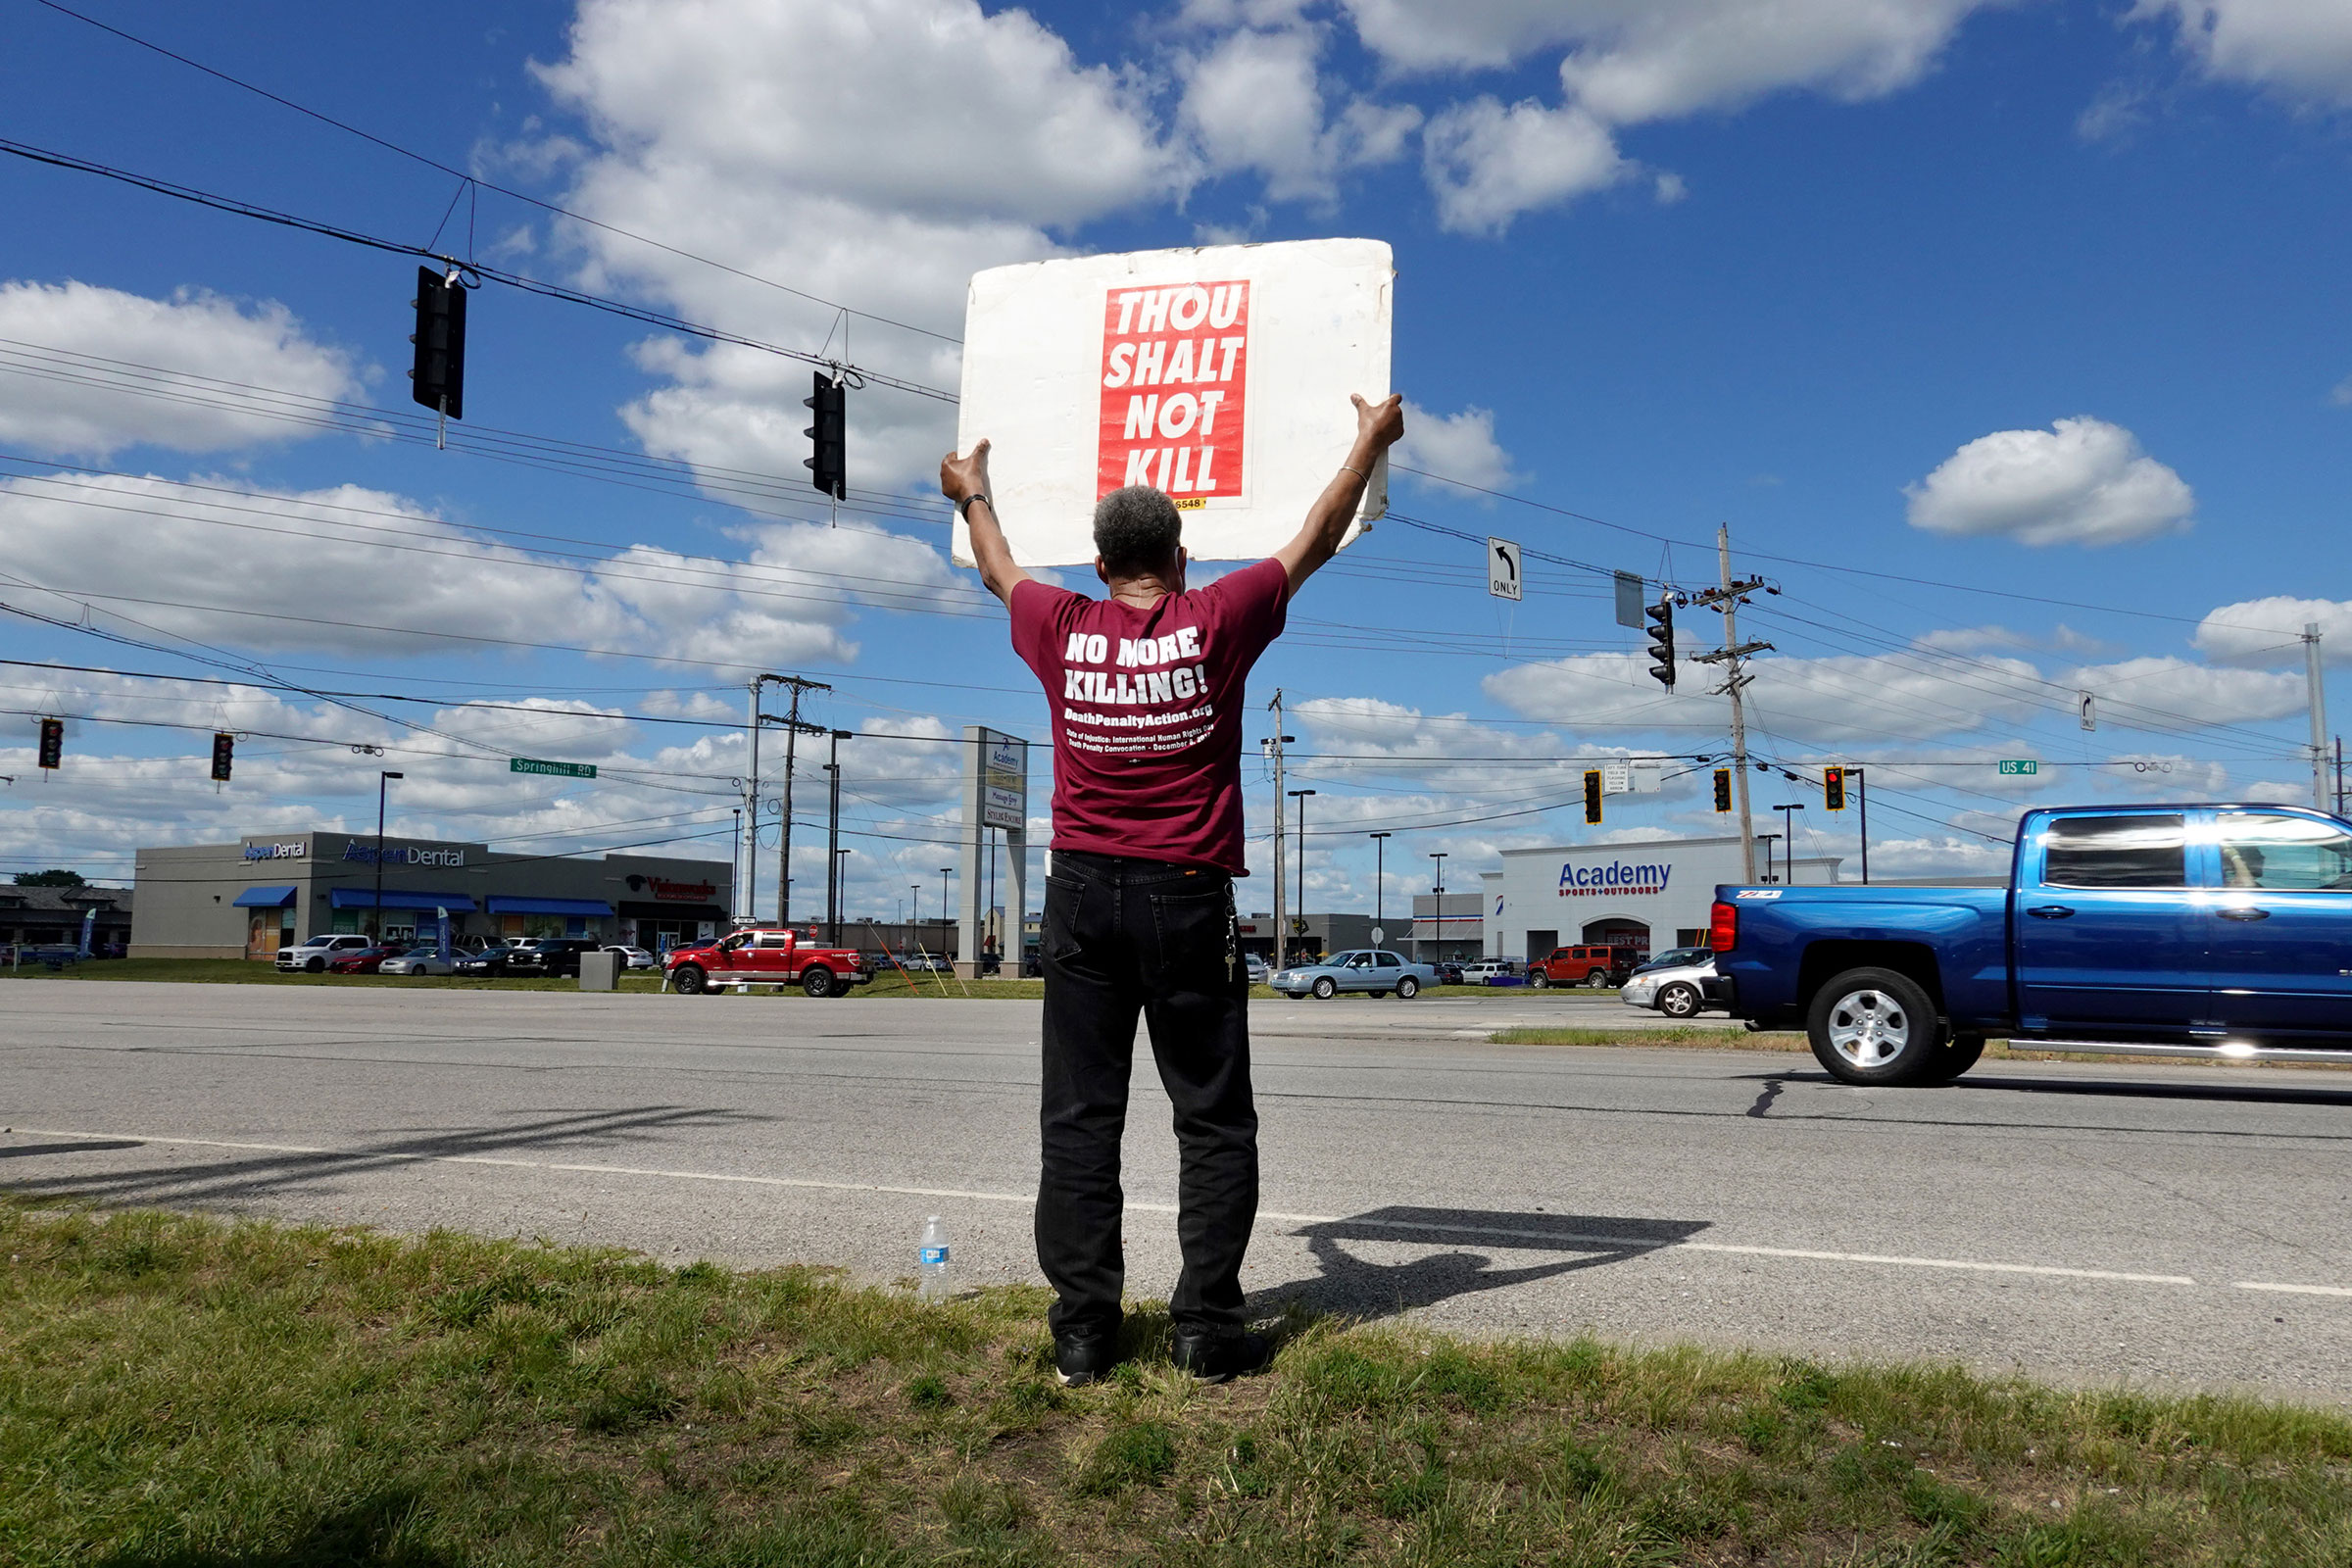 Sylvester Edwards expresses his opposition to the death penalty during a protest near the Federal Correctional Complex where Daniel Lewis Lee is scheduled to be executed on July 13, 2020 in Terre Haute, Indiana. Lee was convicted and sentenced to die for the 1996 killings in Arkansas of gun dealer William Mueller, his wife Nancy, and her 8-year-old daughter Sarah. He is scheduled to be the first federal prisoner put to death since 2003.